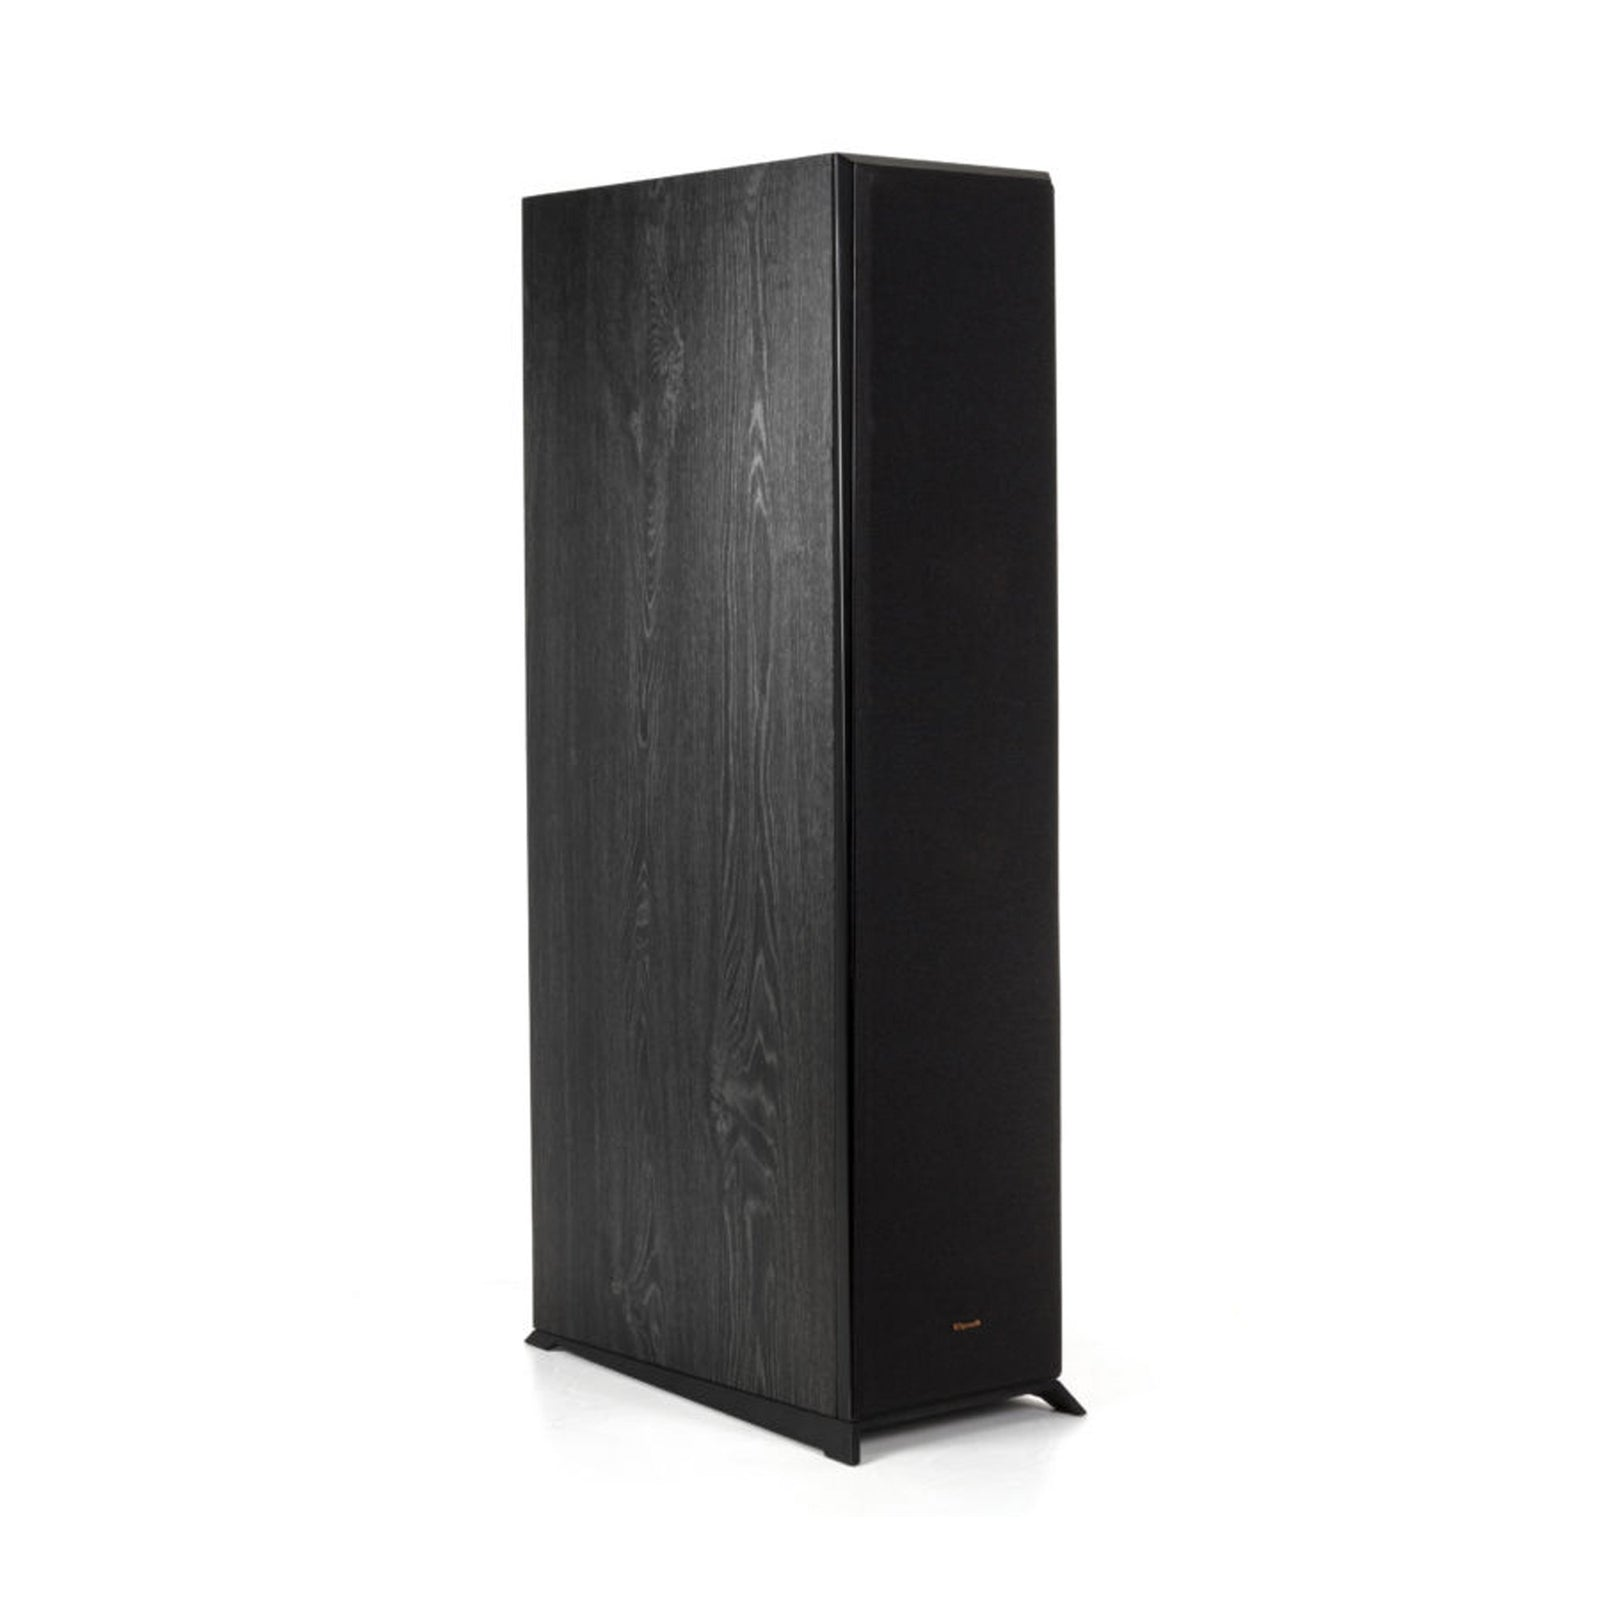 "Klipsch Reference Premiere Dual 8"" Floorstander with Atmos Black Grille"